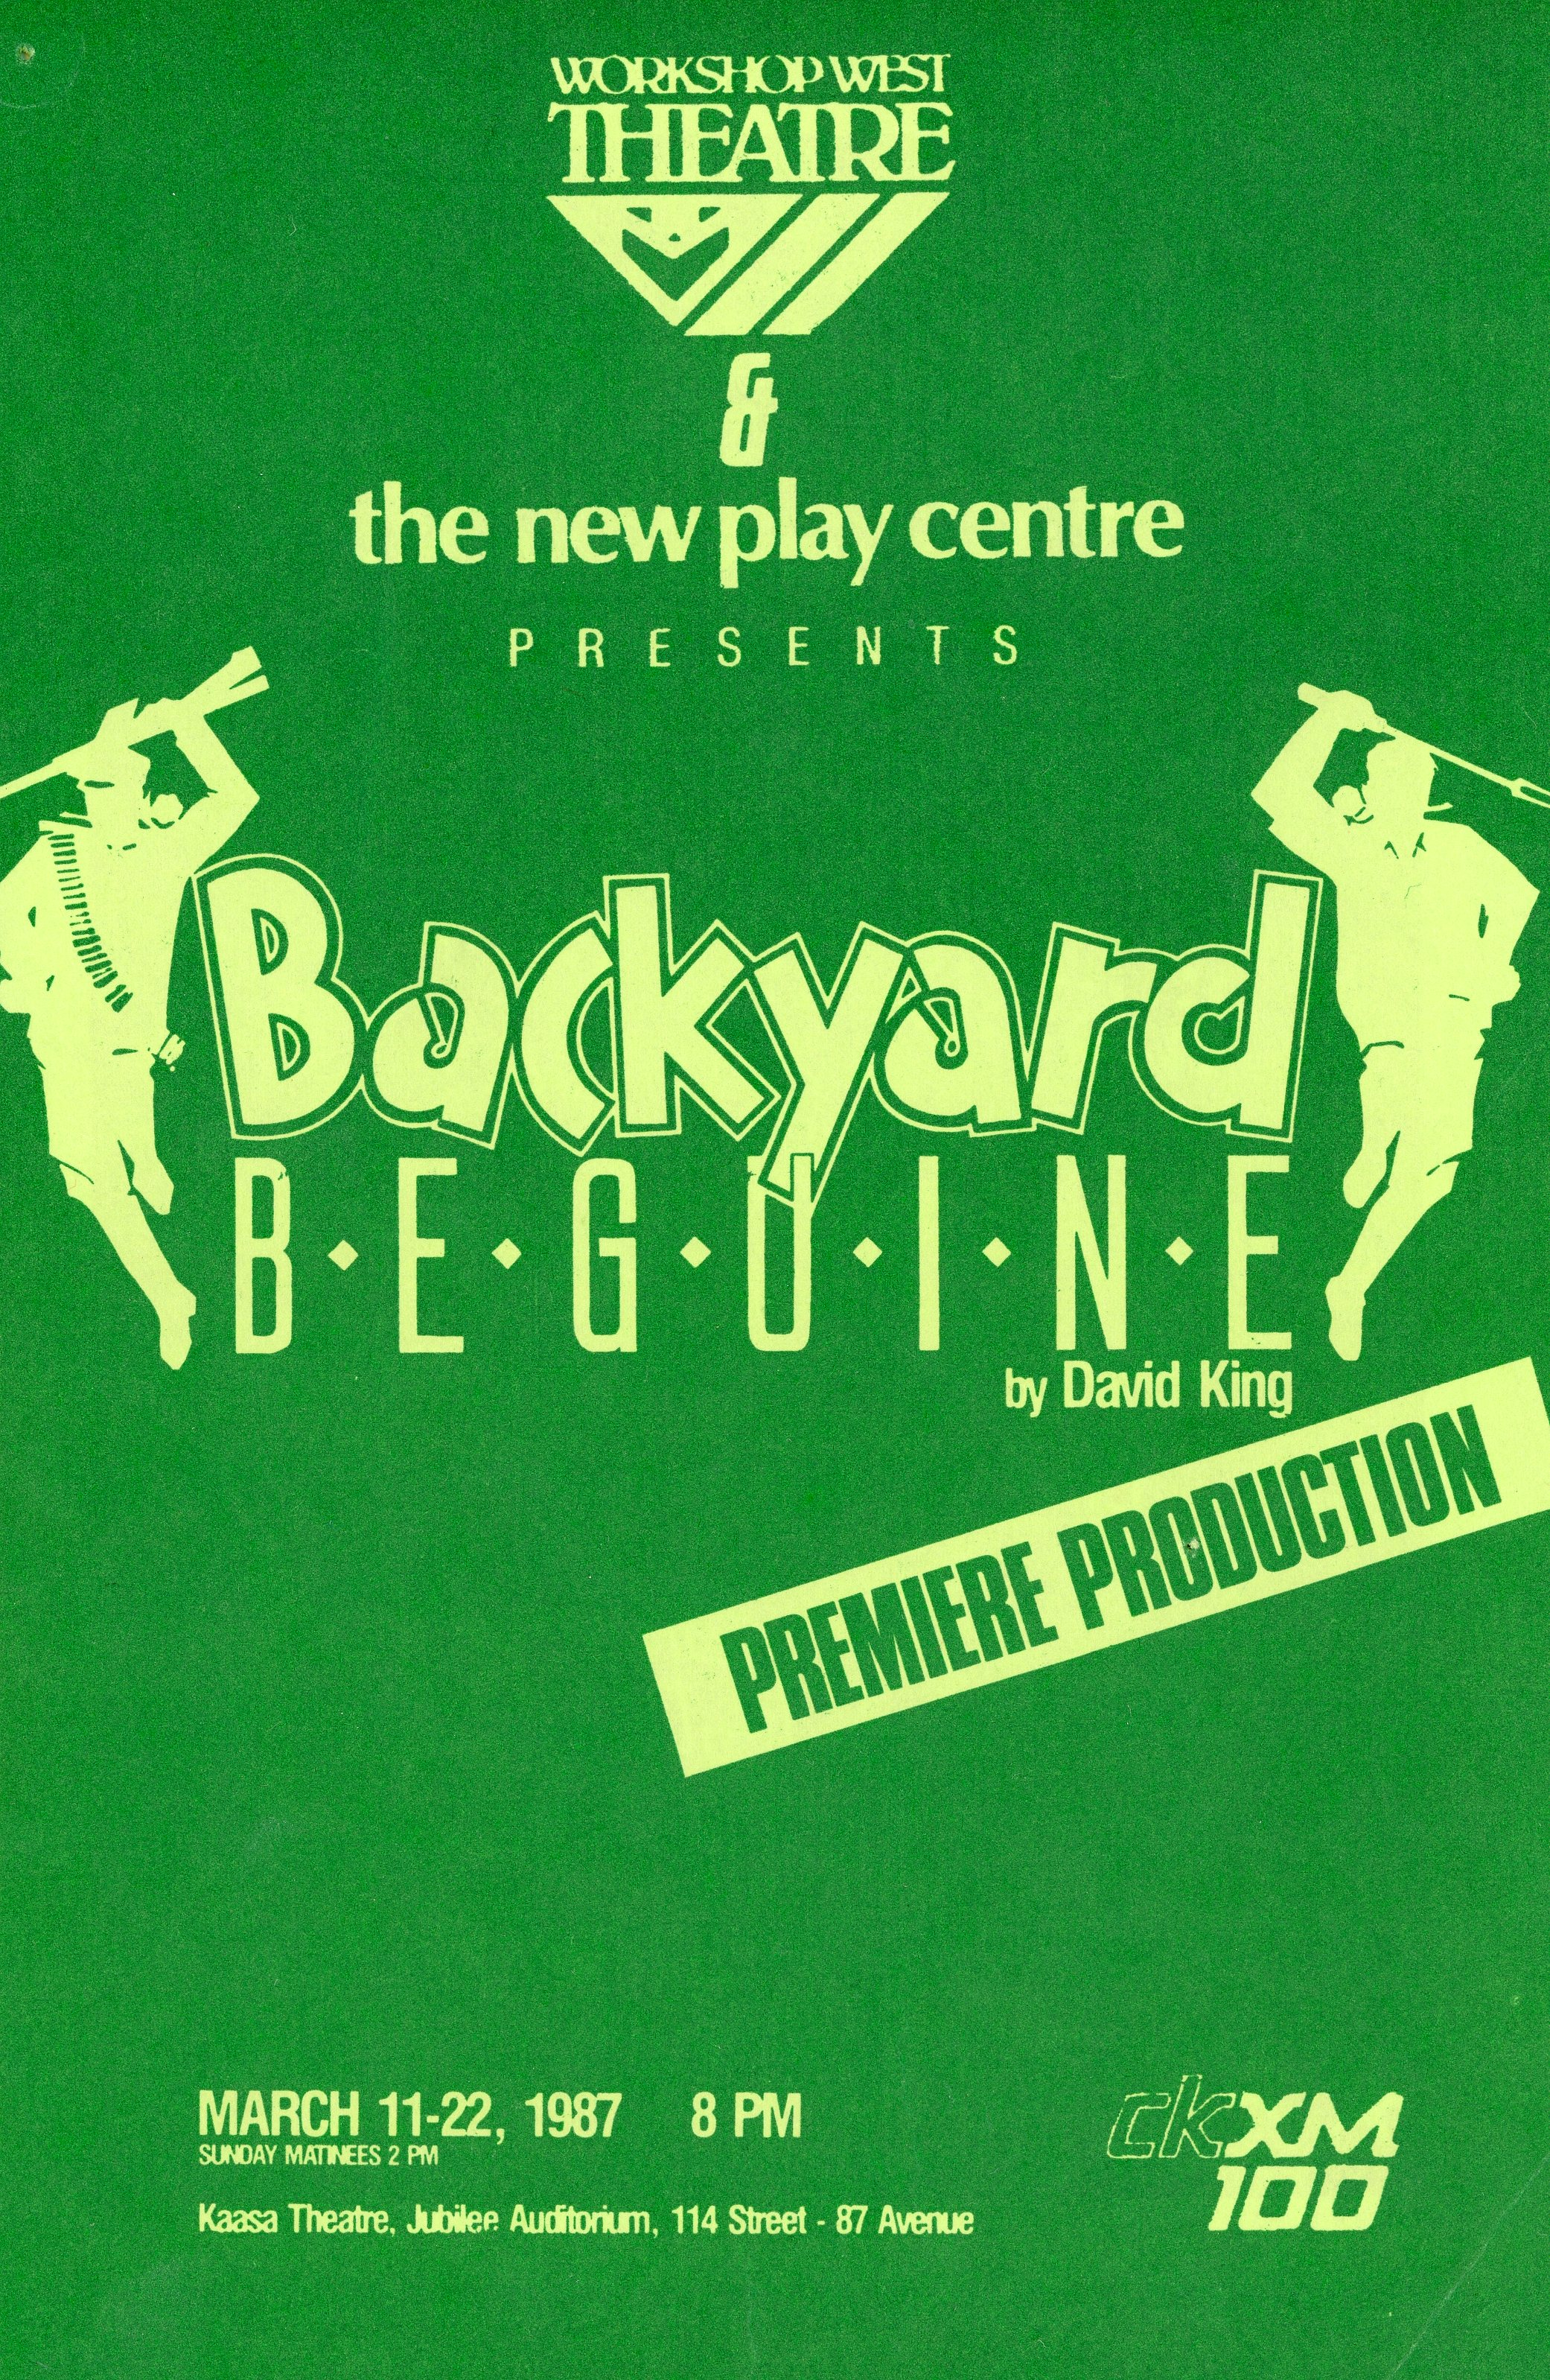 1986/87 Season — Workshop West Playwrights' Theatre | Real